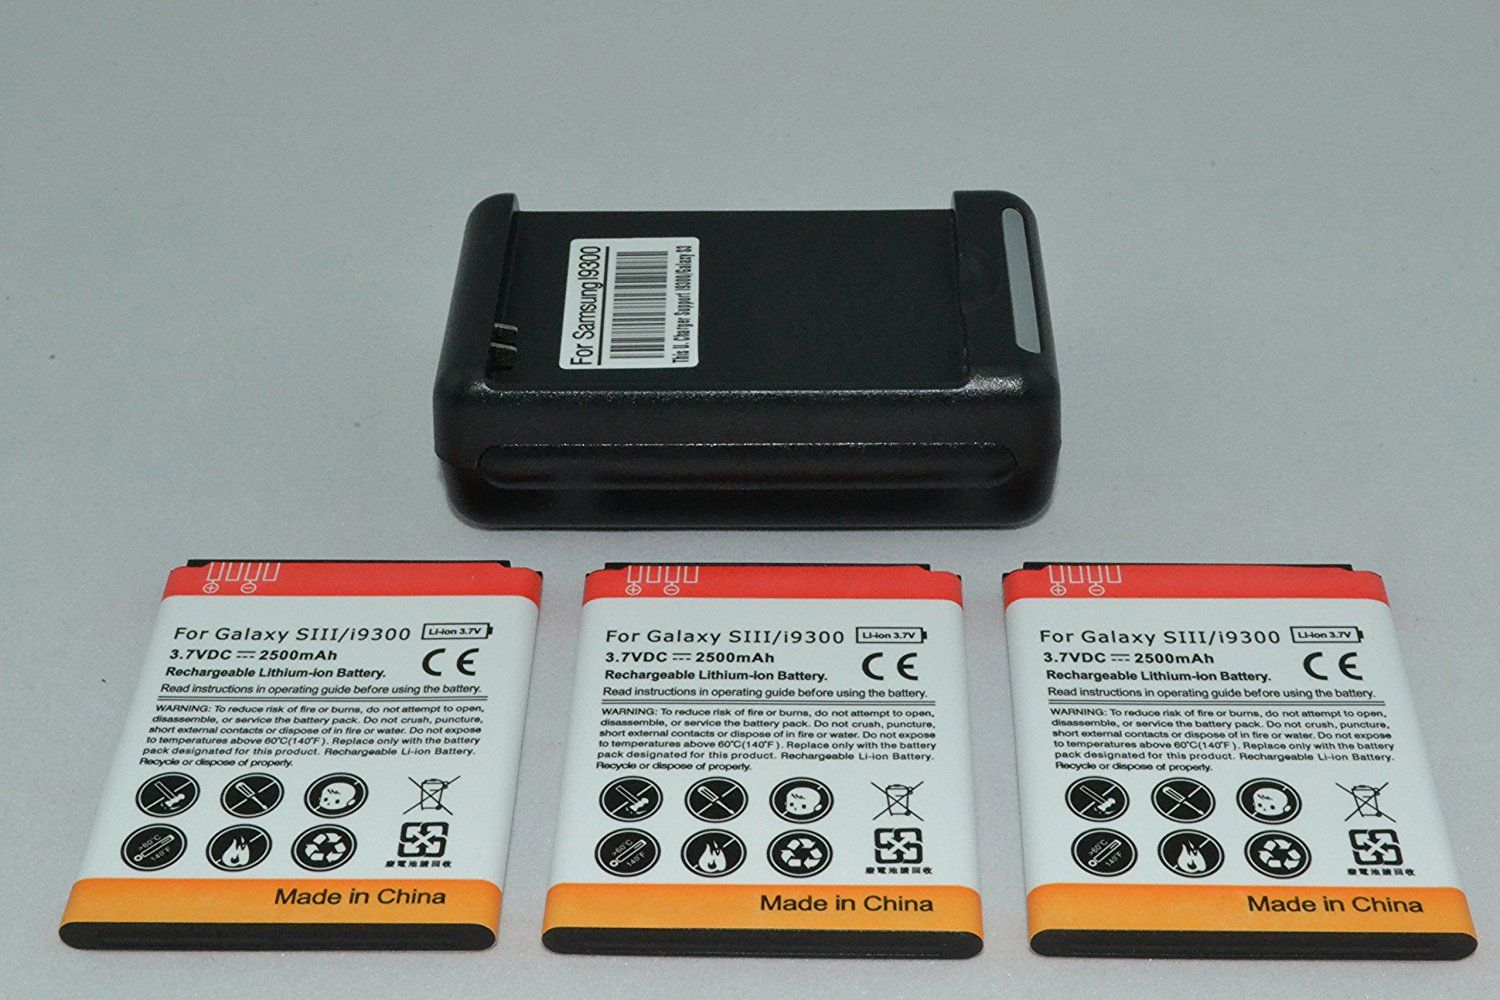 3 X 2500mah Batteries And Charger For Samsung Galaxy S3 Siii Compatible Models I9300 I535 L710 T999 I74 With Images Cell Phone Battery Samsung Galaxy Note Galaxy Note